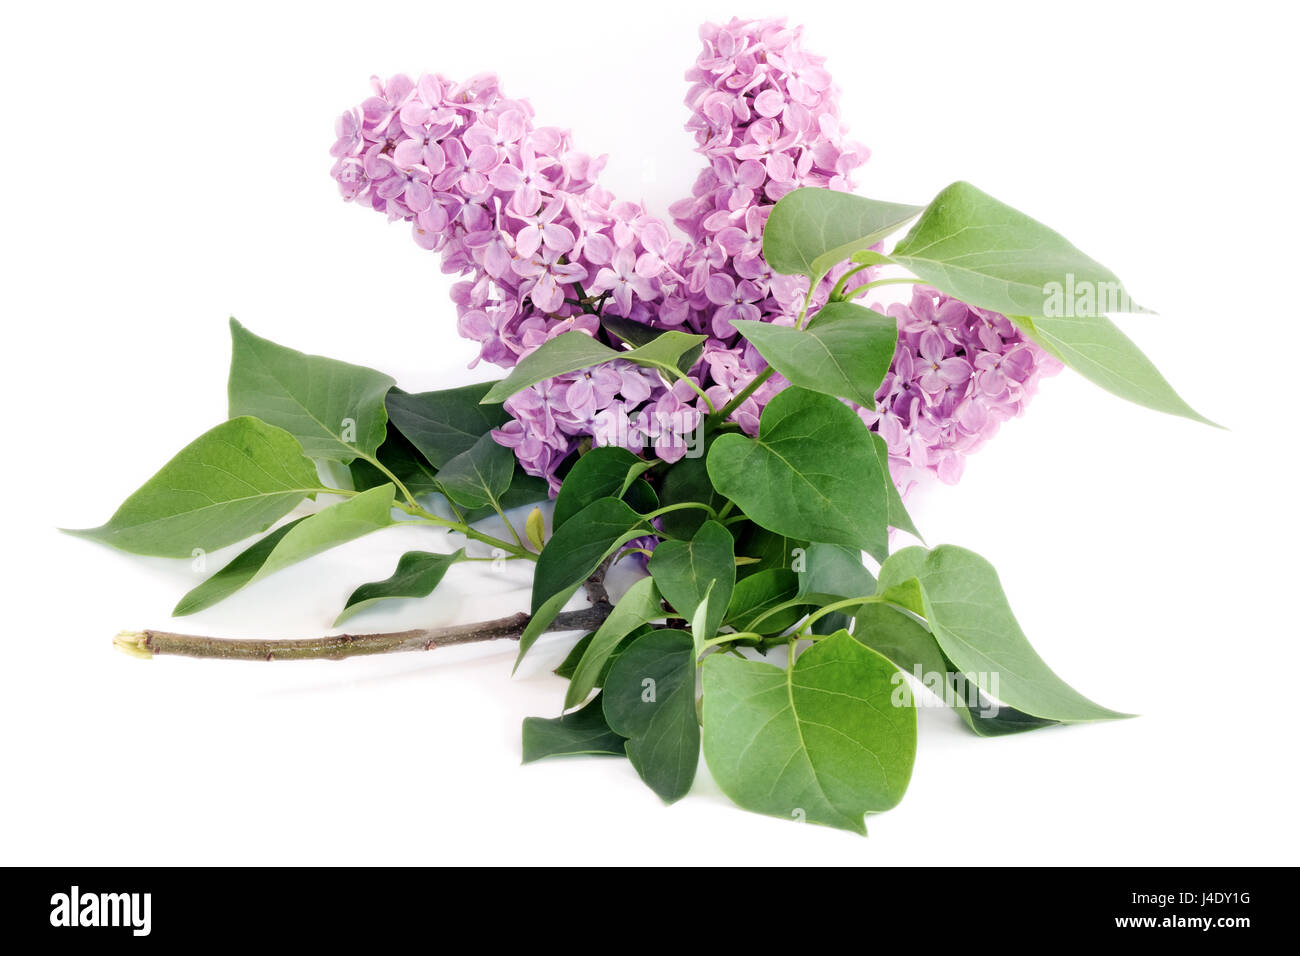 Lilac flower with green leaves against white background - Stock Image